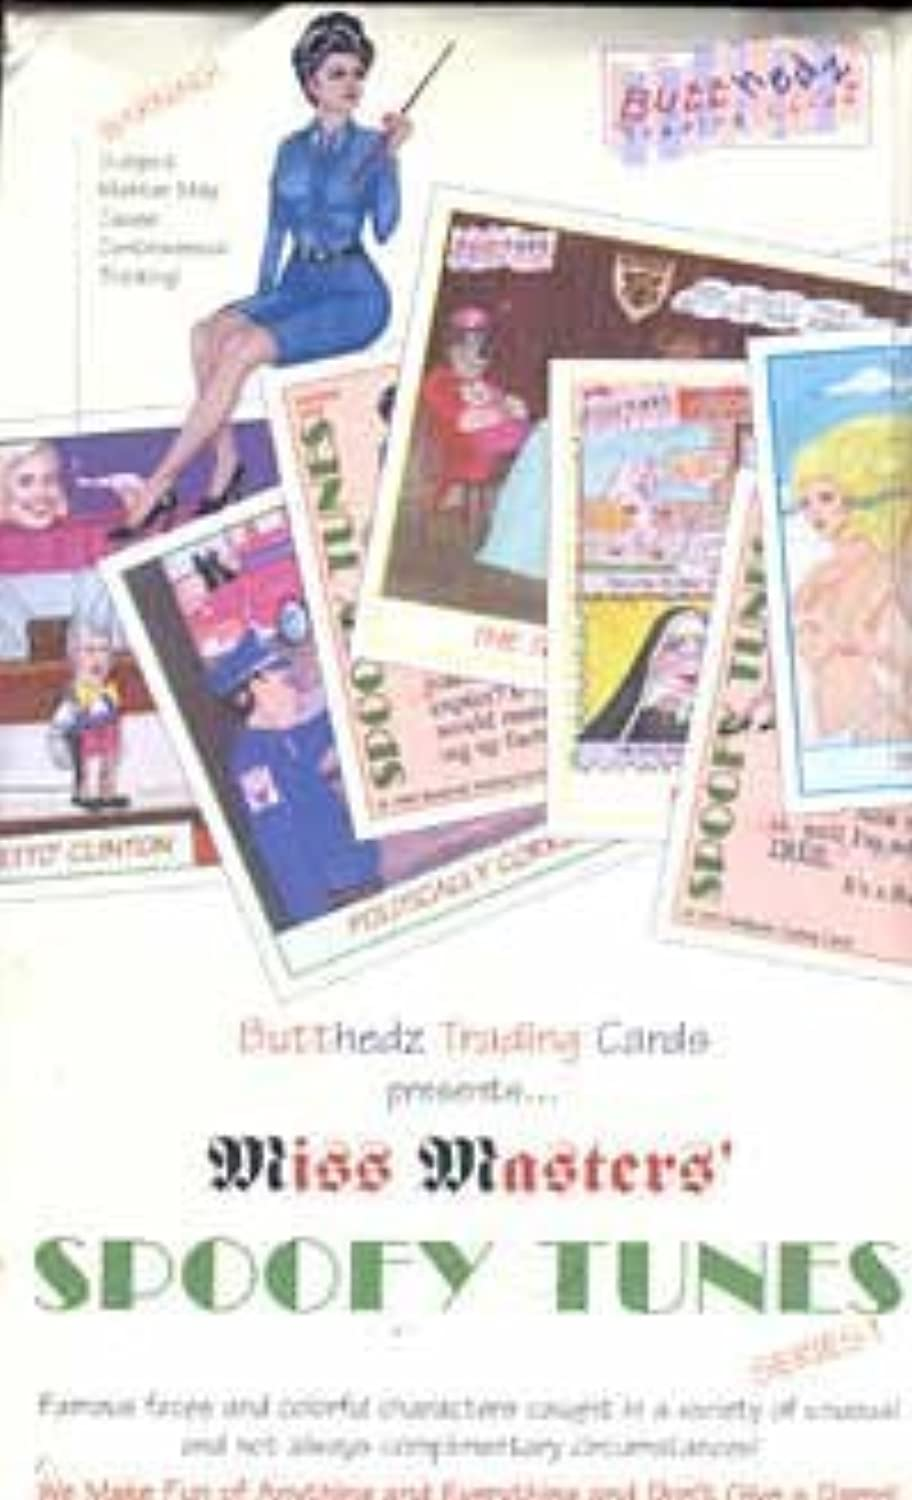 Miss Masters' Spoofy Tunes Trading Cards Series 1 Box 36 Count by  Pamema Marketing, Ltd.